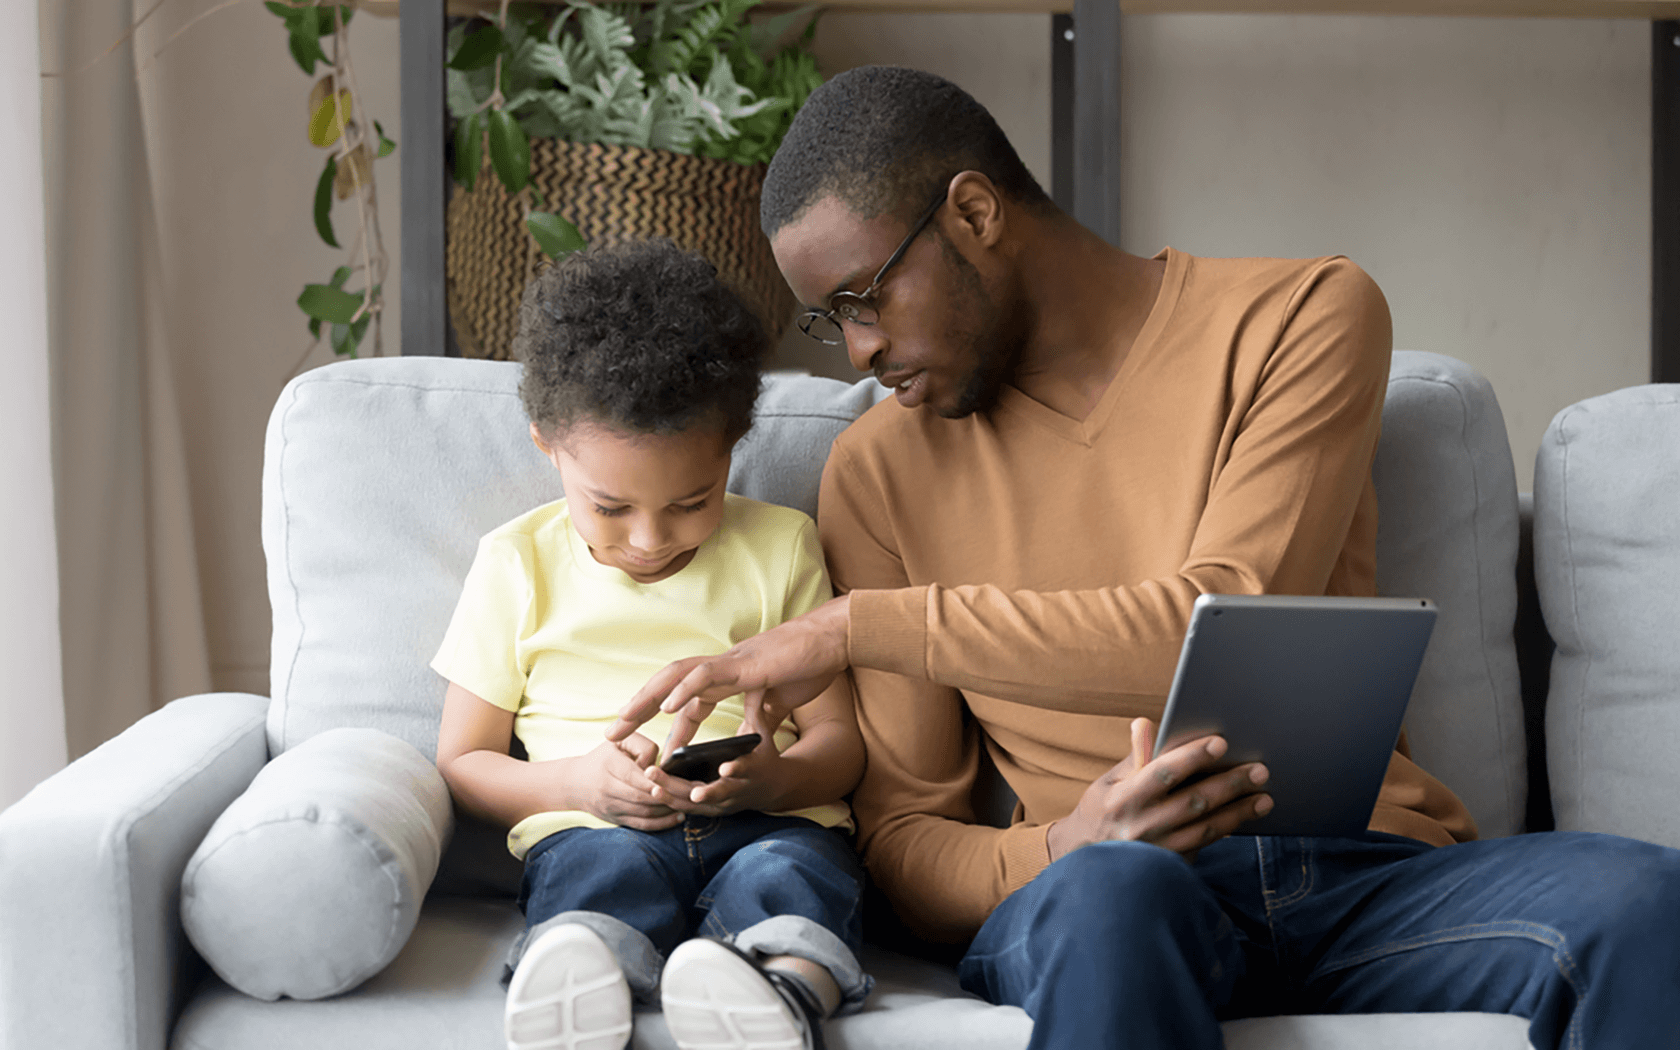 What I Learned from Dr. Chip Donohue's Report on Kids and Screen Time